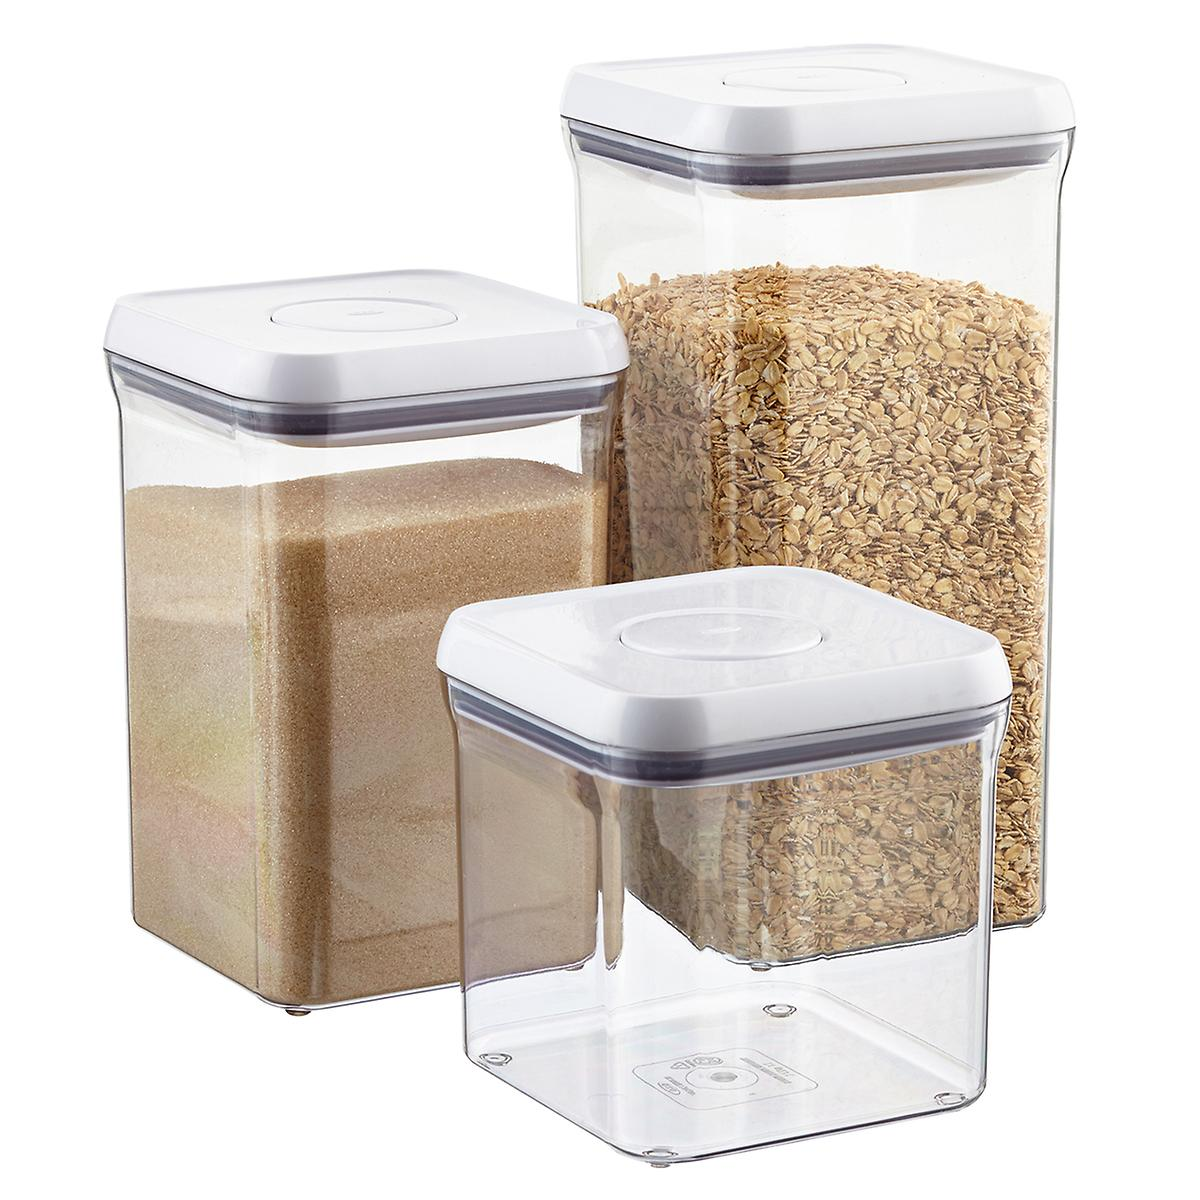 Space in the kitchen by adding shelves and glass canisters with seals - Good Grips 6 Square Pop Canisters